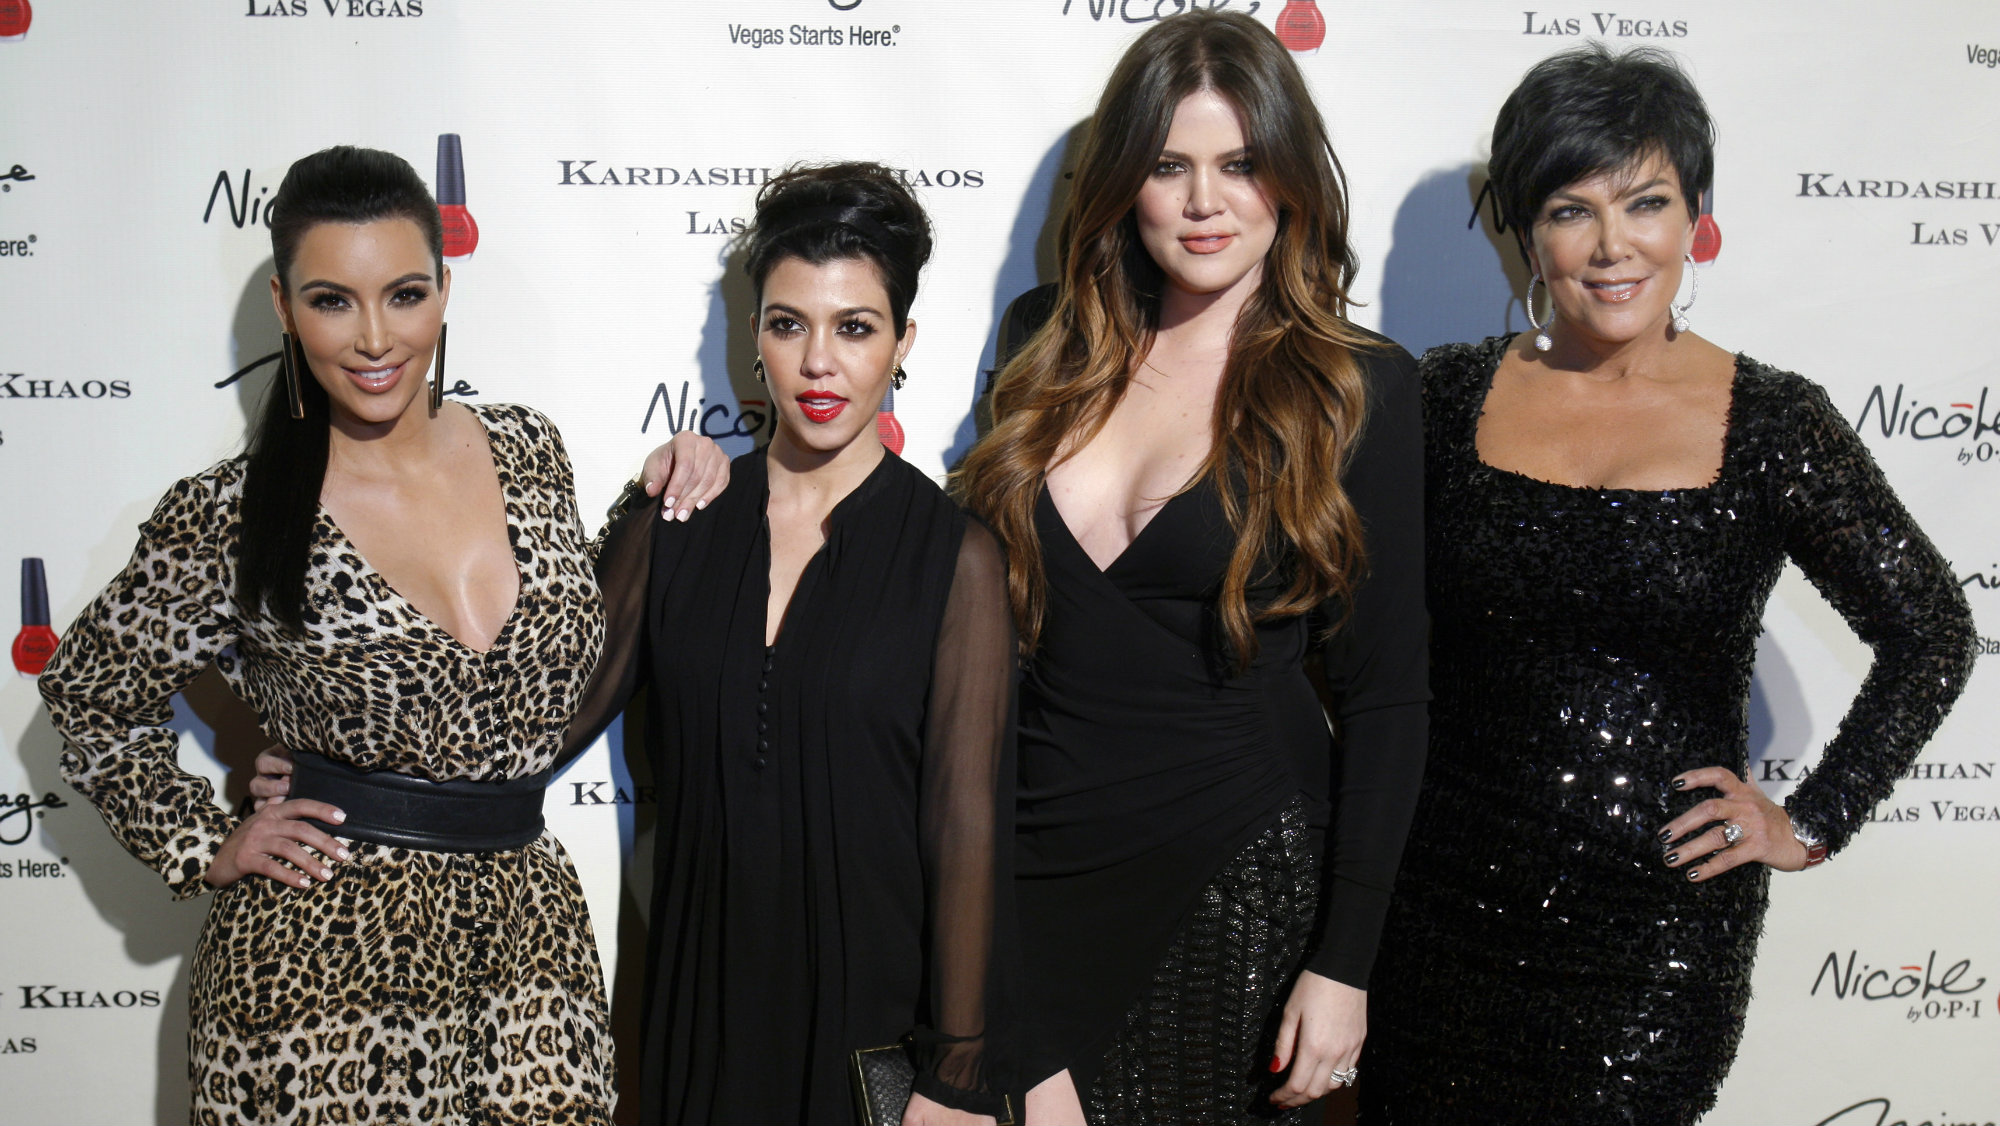 Television personalities (L-R) Kim Kardashian, Kourtney Kardashian, Khloe Kardashian and Kris Jenner arrive at the grand opening of the Kardashian Khaos store at the Mirage Hotel and Casino in Las Vegas, Nevada December 15, 2011.